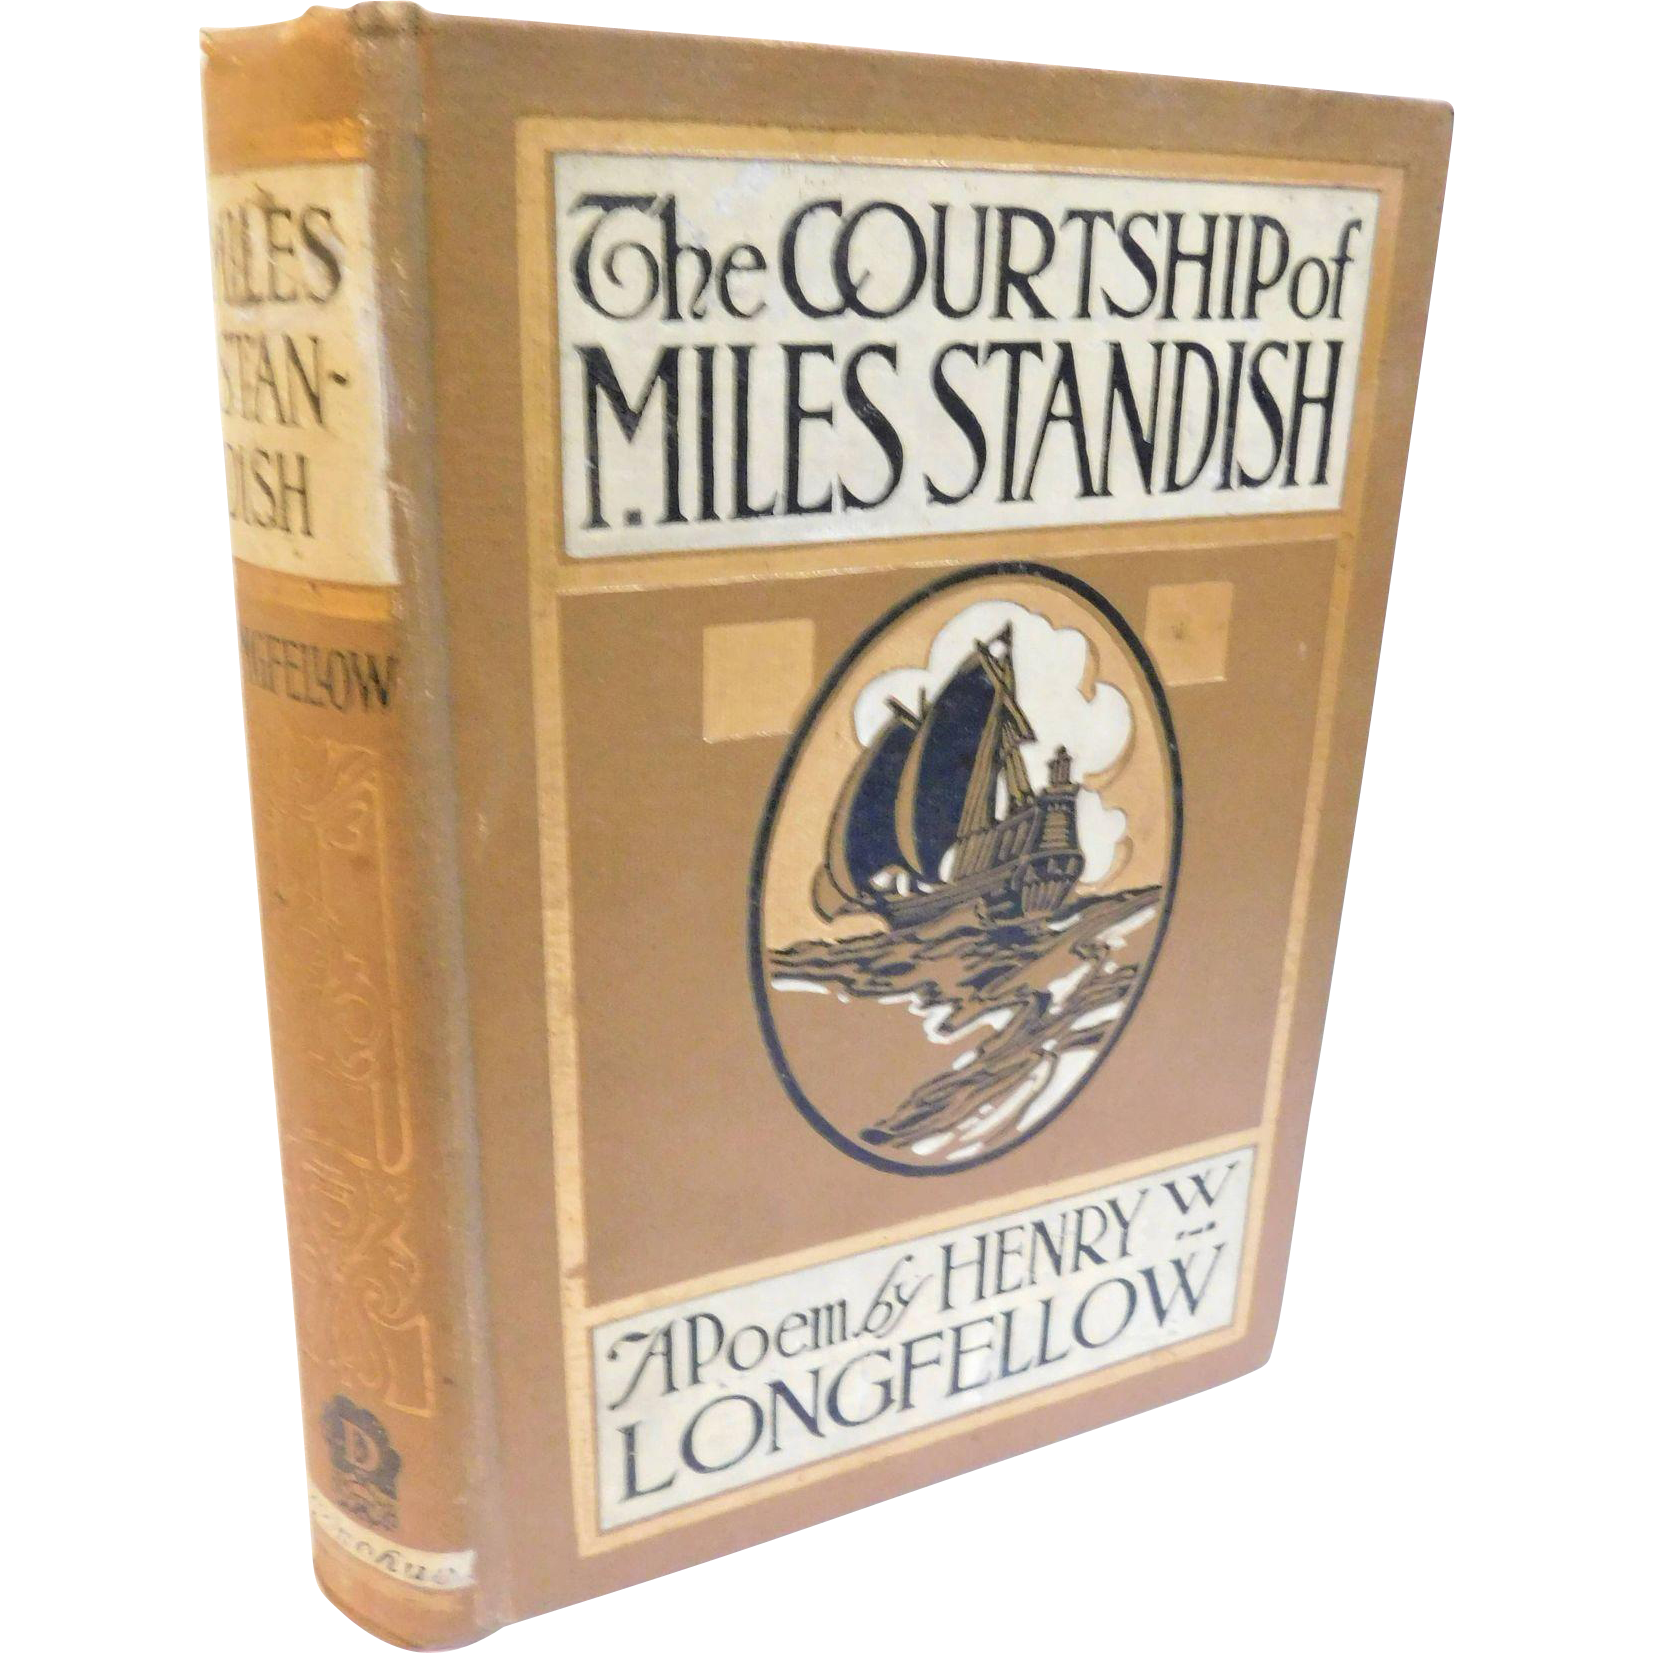 Antique The Courtship of Miles Standish & Other Poems by Henry Longfellow Poem Poetry Pilgrims Plymouth Illustrated Book Decorative Cover